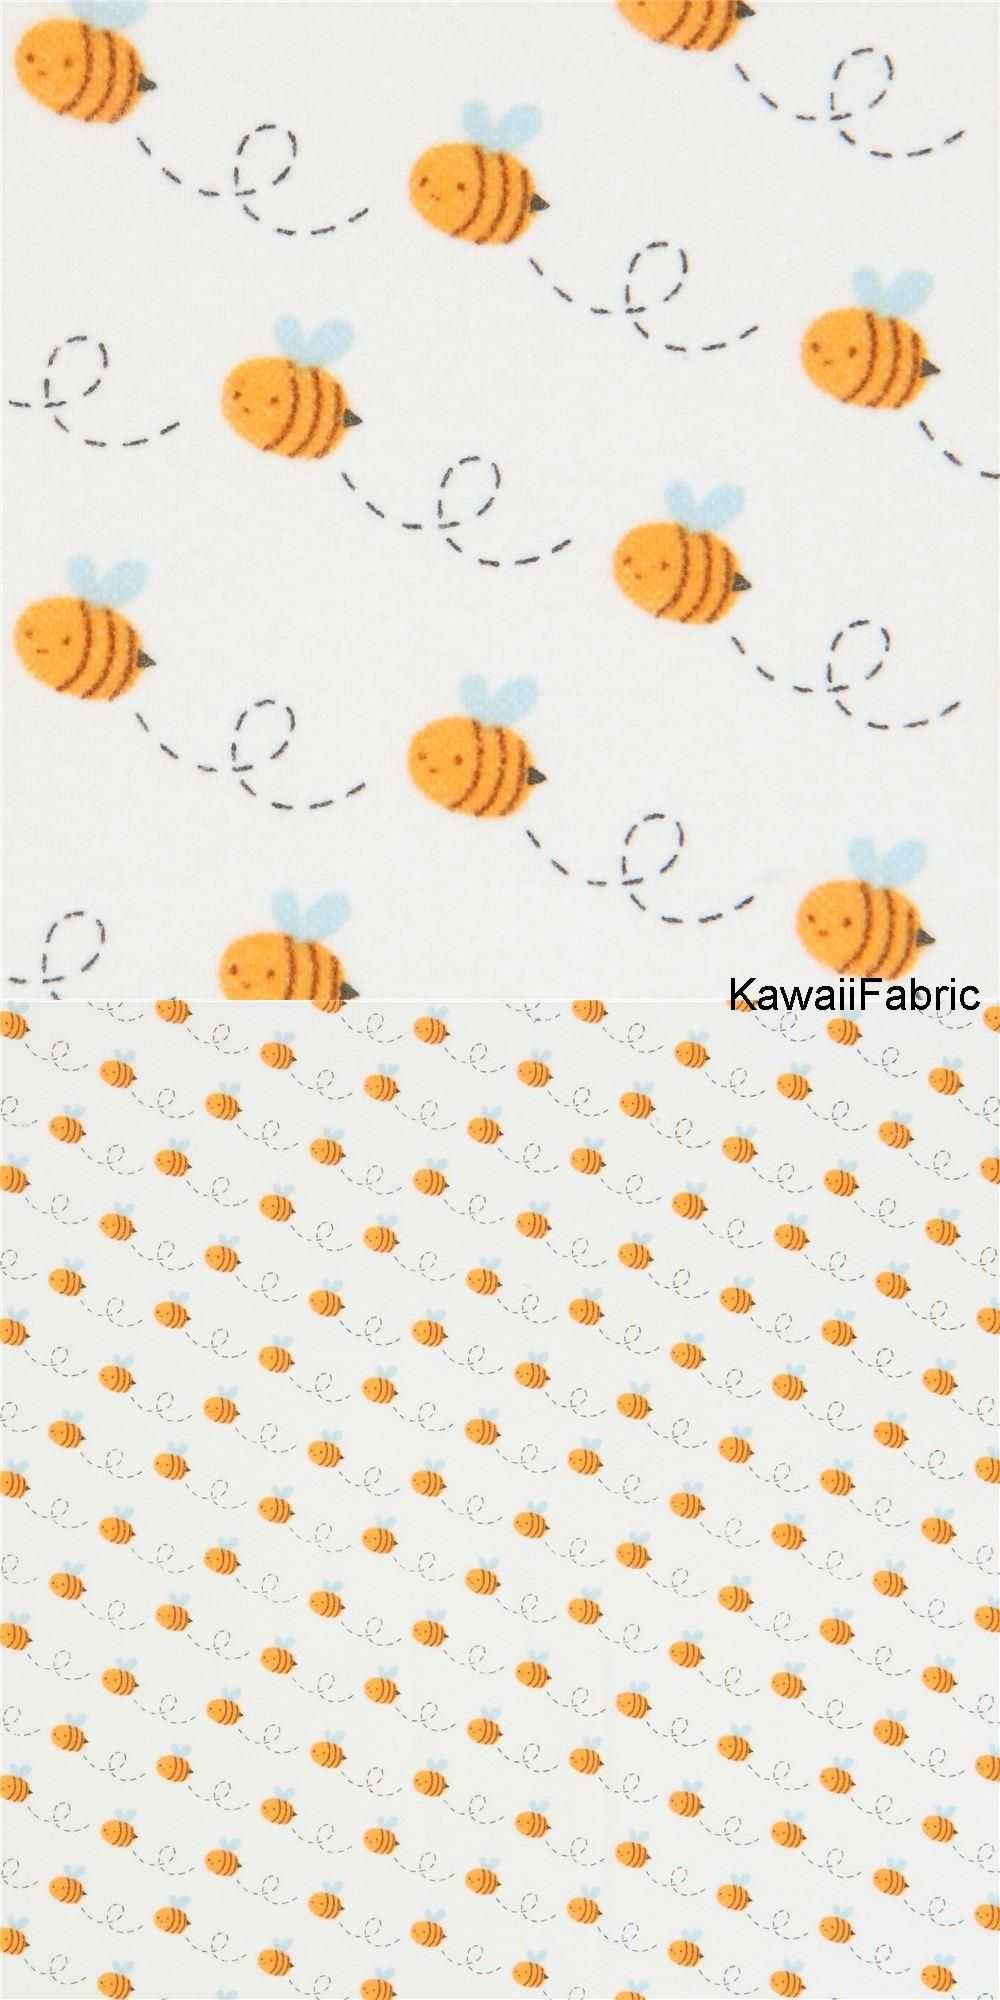 Cream Flannel Robert Kaufman Small Bee Insect Fabric Woodland Highway Kawaii Fabric Shop Small Bees Fabric Flannel Fabric